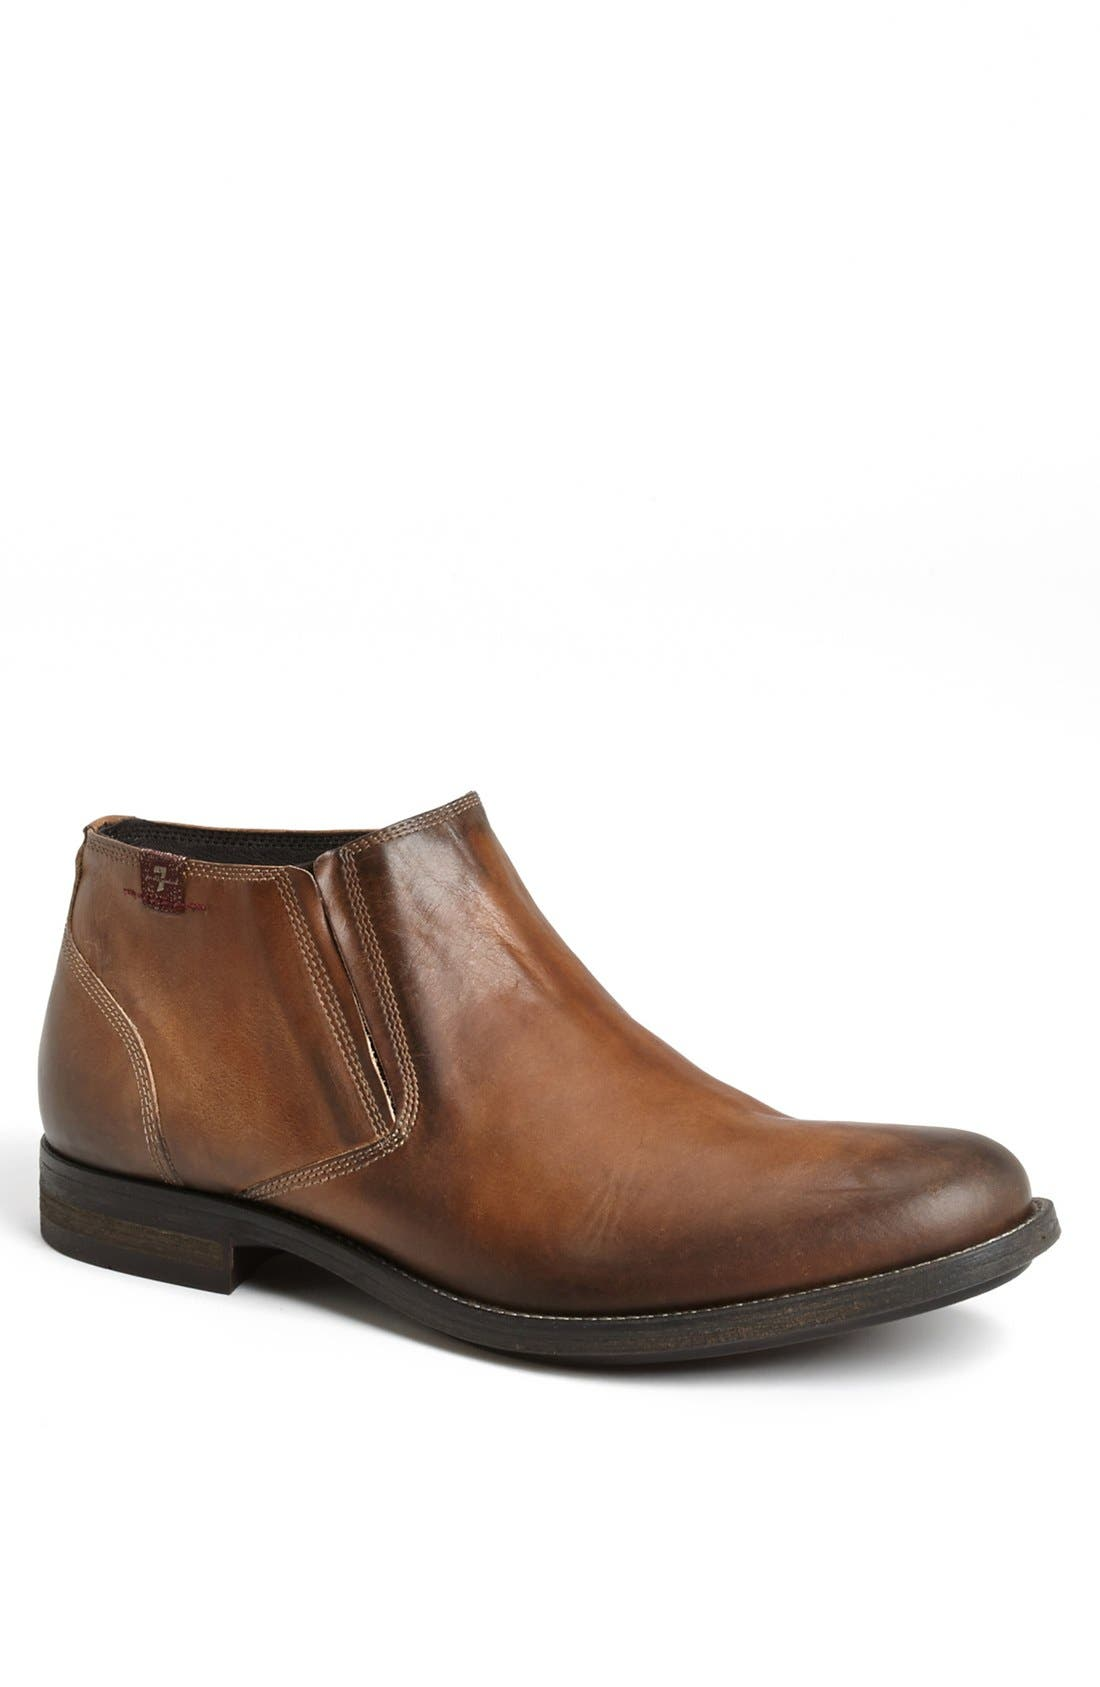 Main Image - 7 For All Mankind® 'Tag' Chelsea Boot (Men)